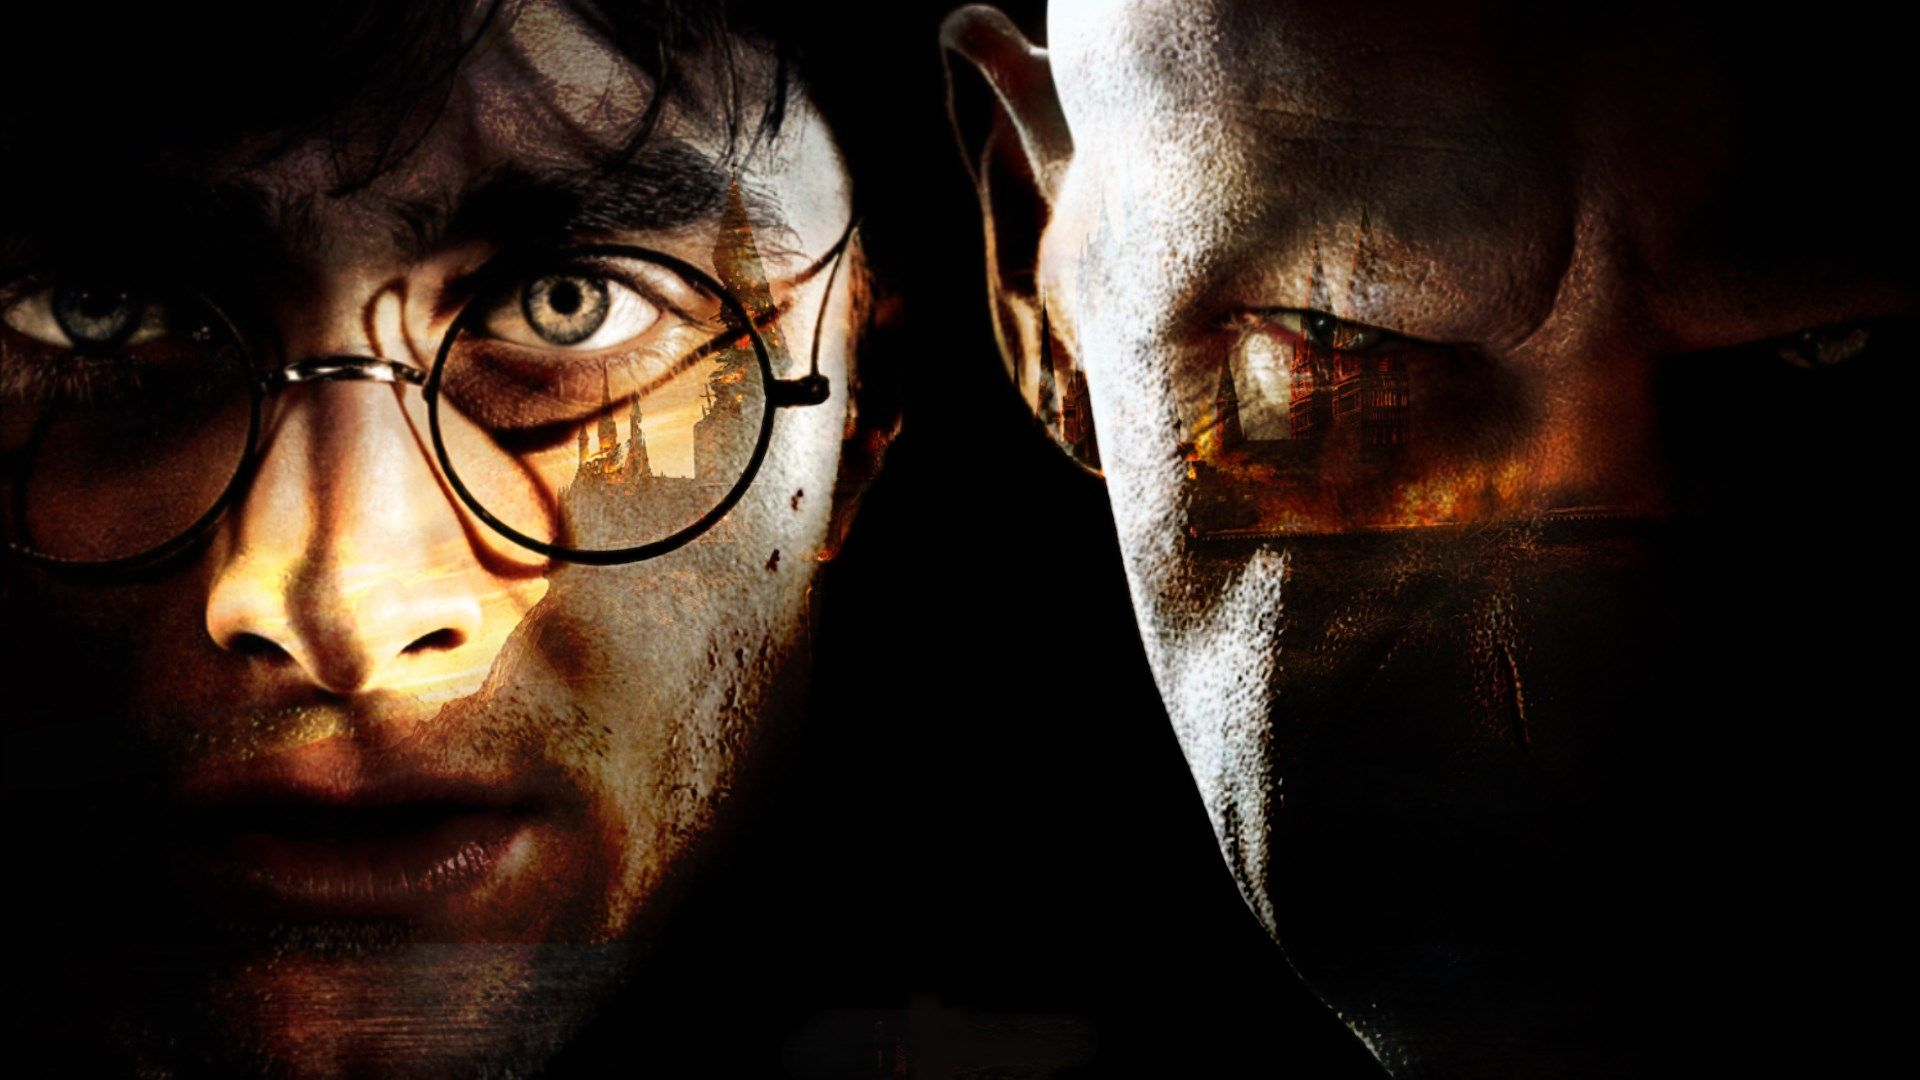 Top Wallpaper Mac Harry Potter - e3aa04083537f17afc50461445ab4a67  Picture_789743.jpg